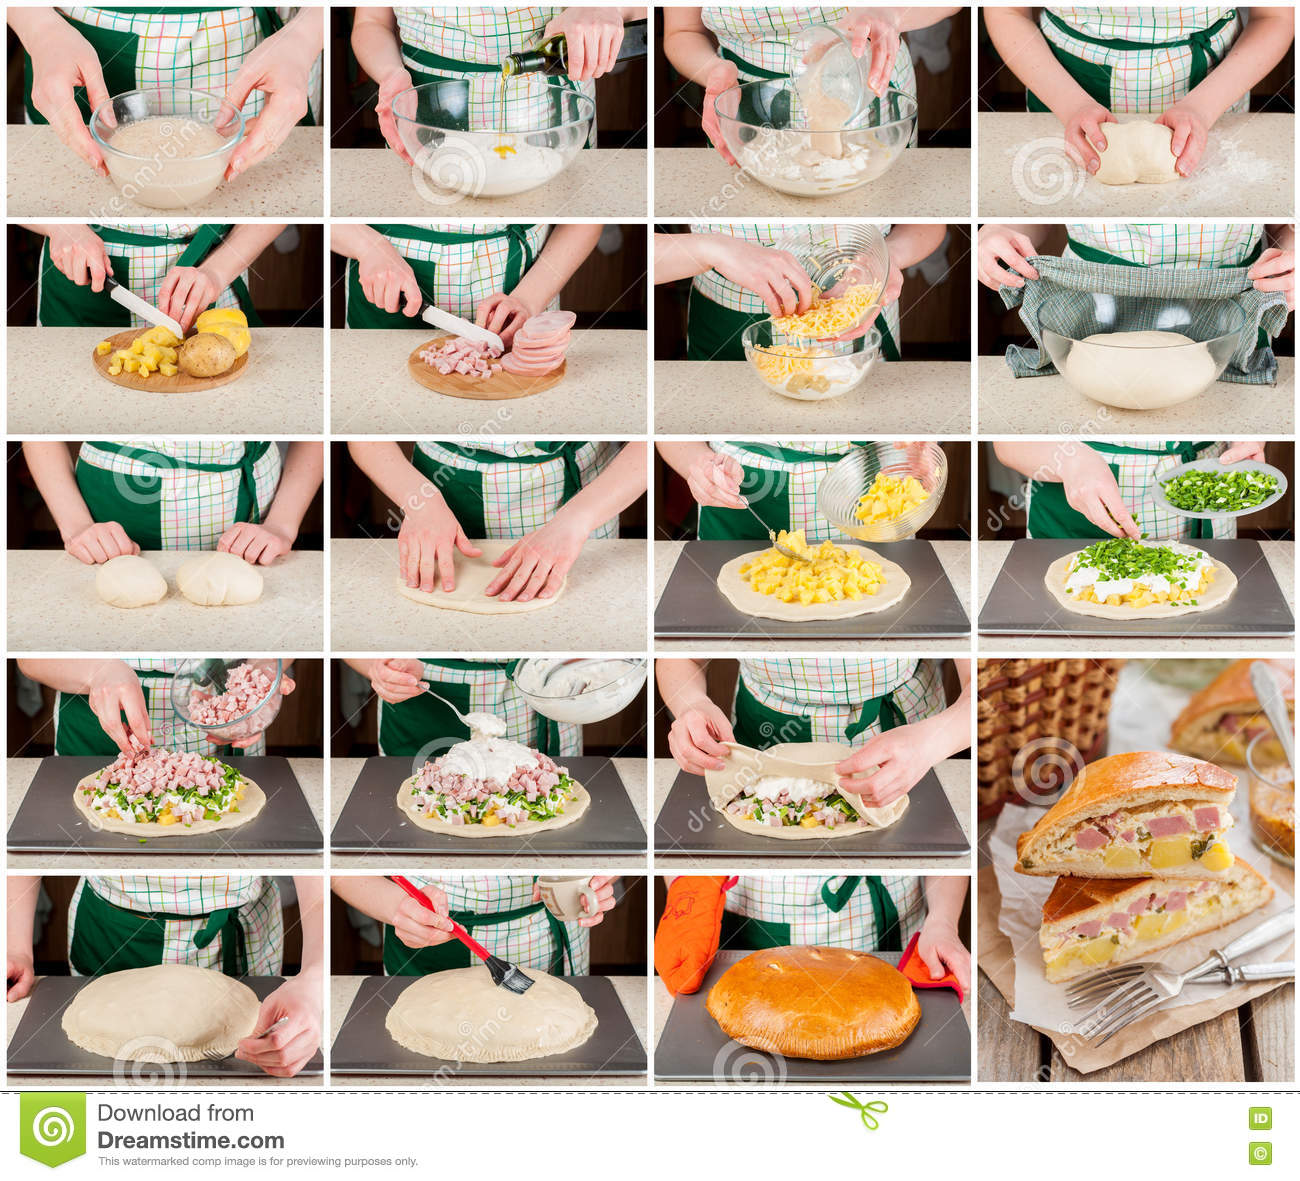 A Step By Step Collage Of Potato, Ham, Sour Cream And Cheese Pie.